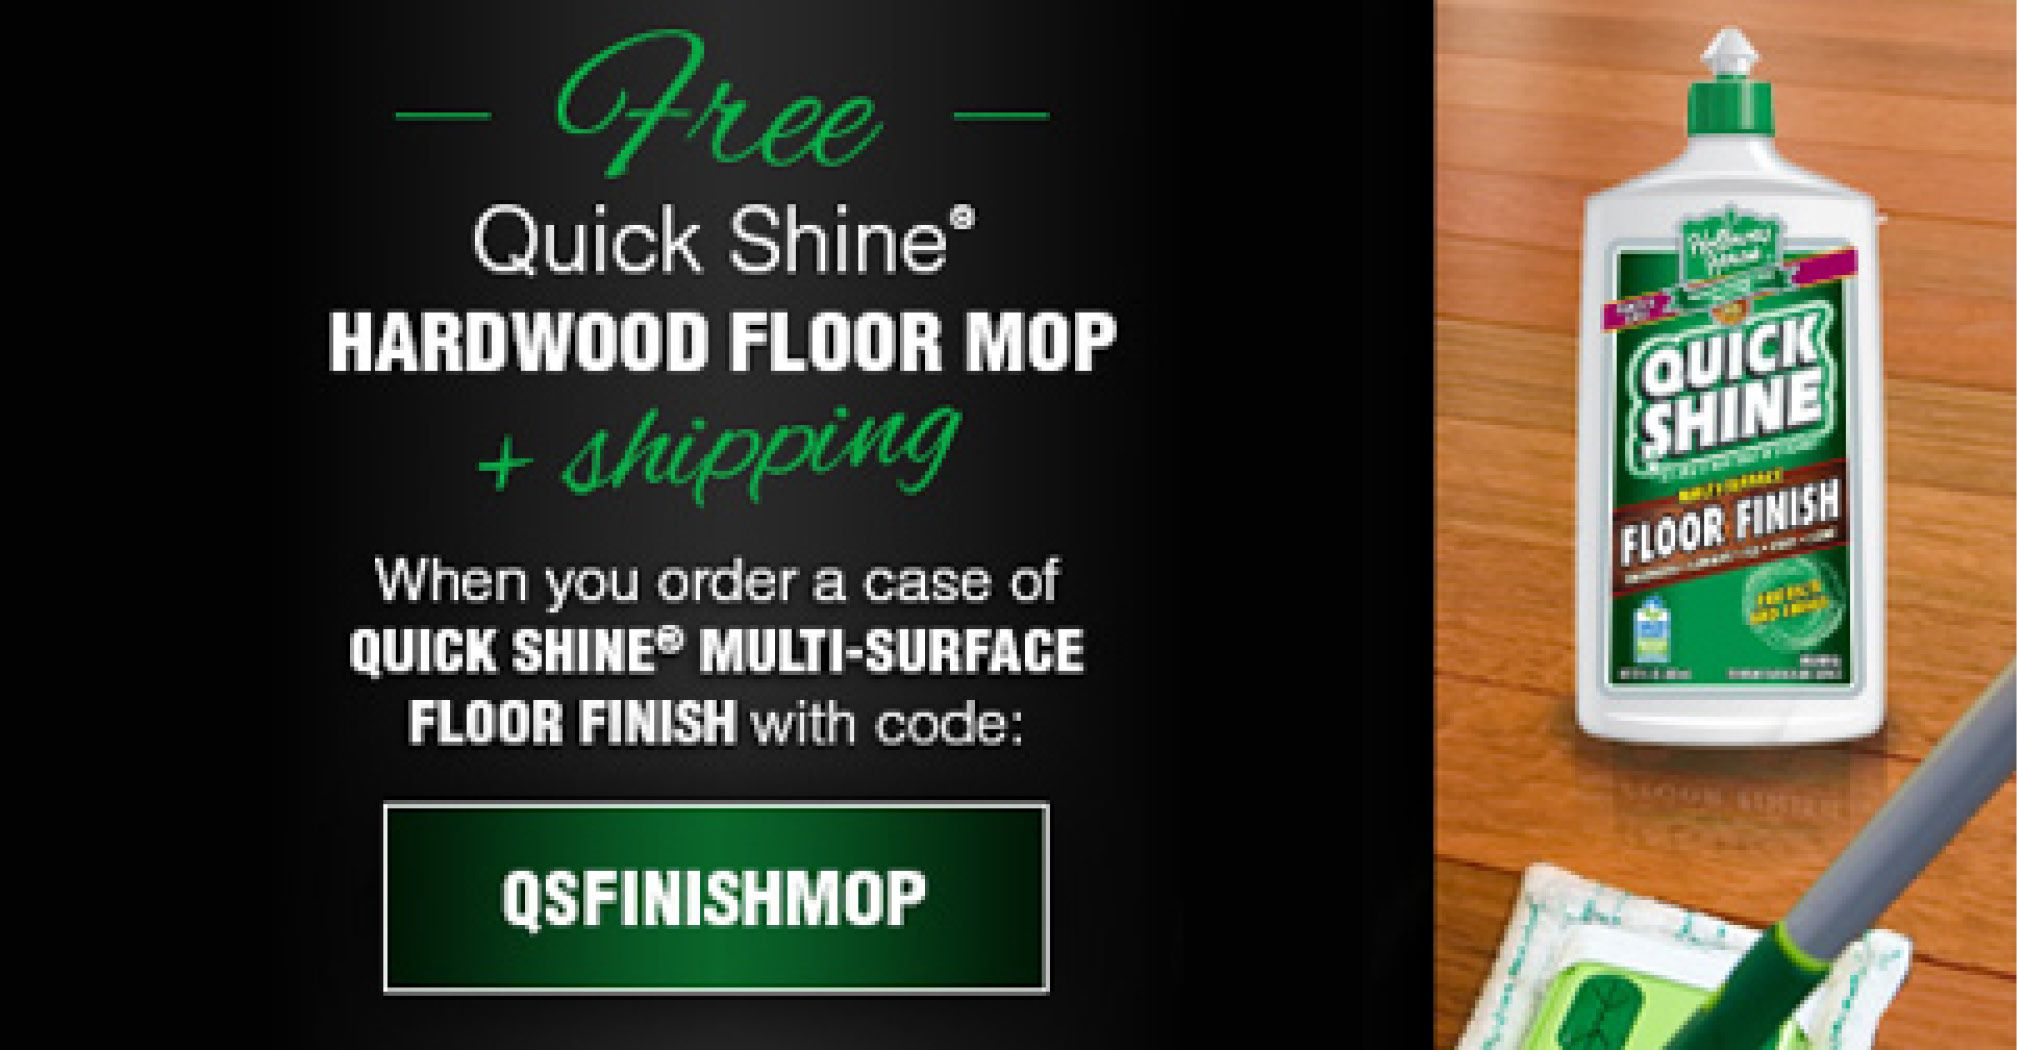 Need a new mop for your hardwoods? Don't miss out on this